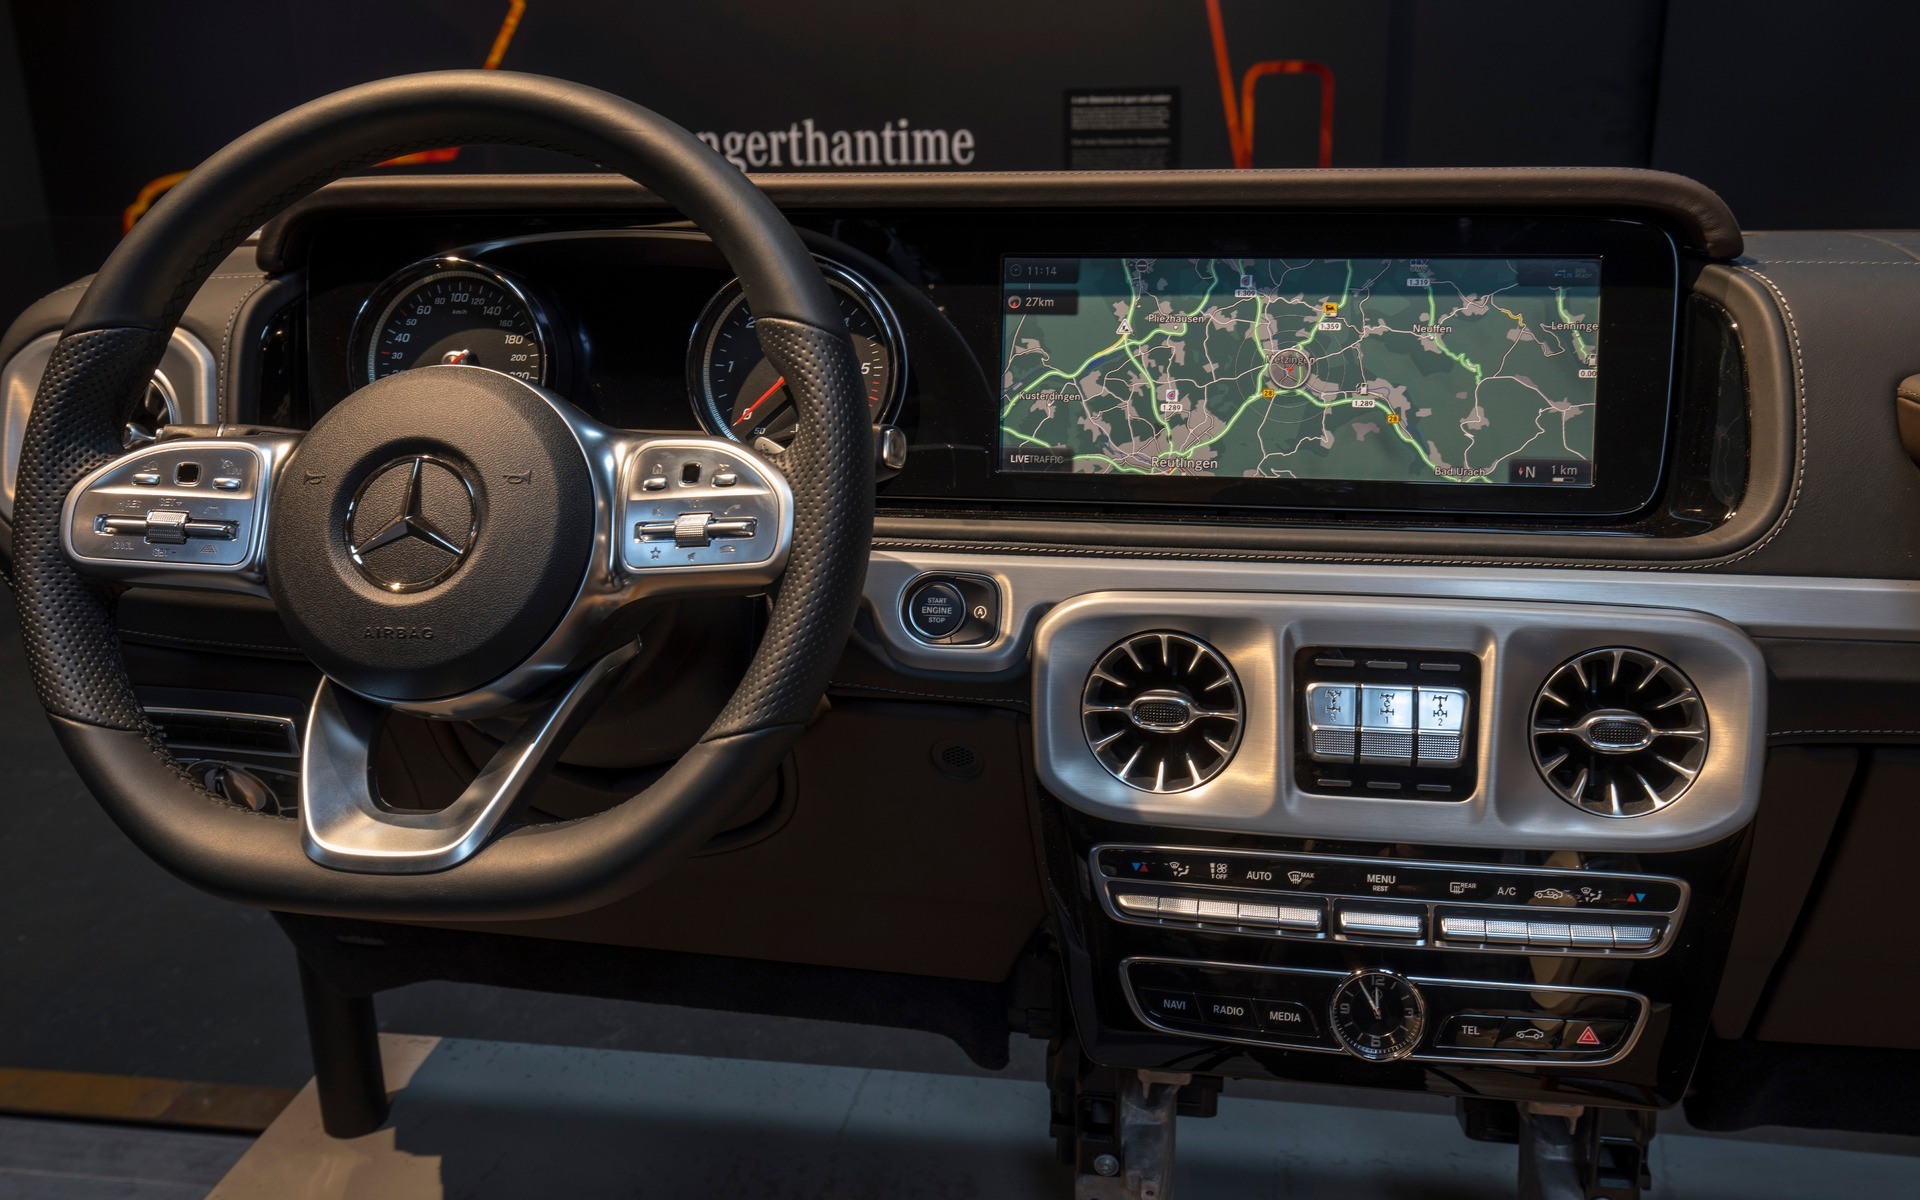 2019 Mercedes Benz G Class A Major Redesign 40 Years Later The Car Guide